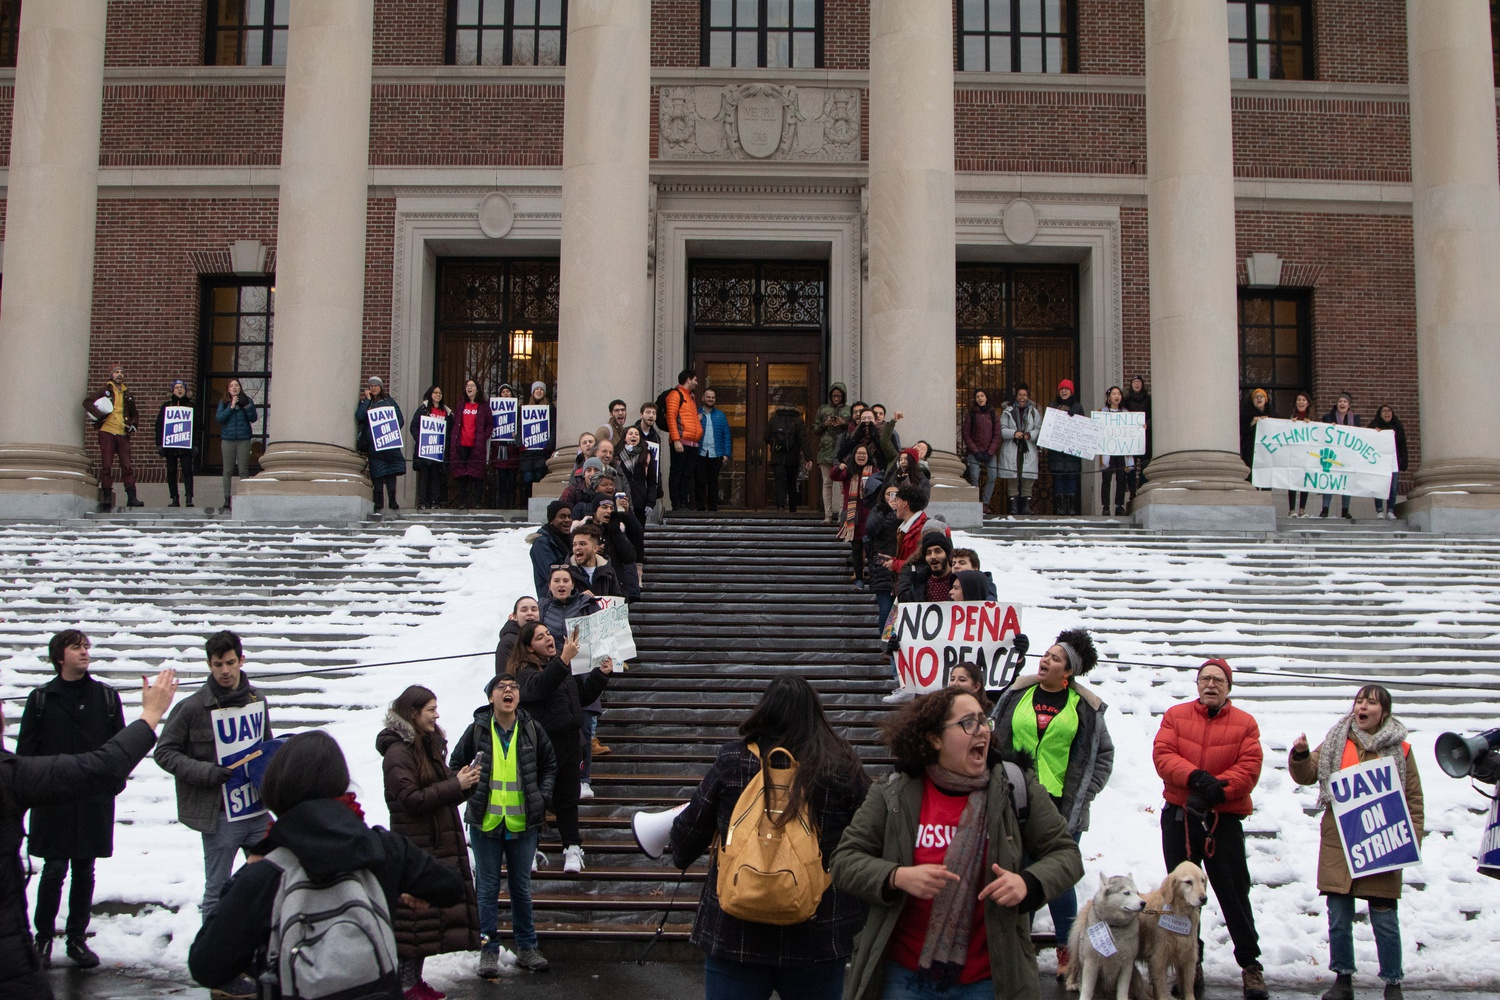 Ethnic Studies Rally at Widener Library